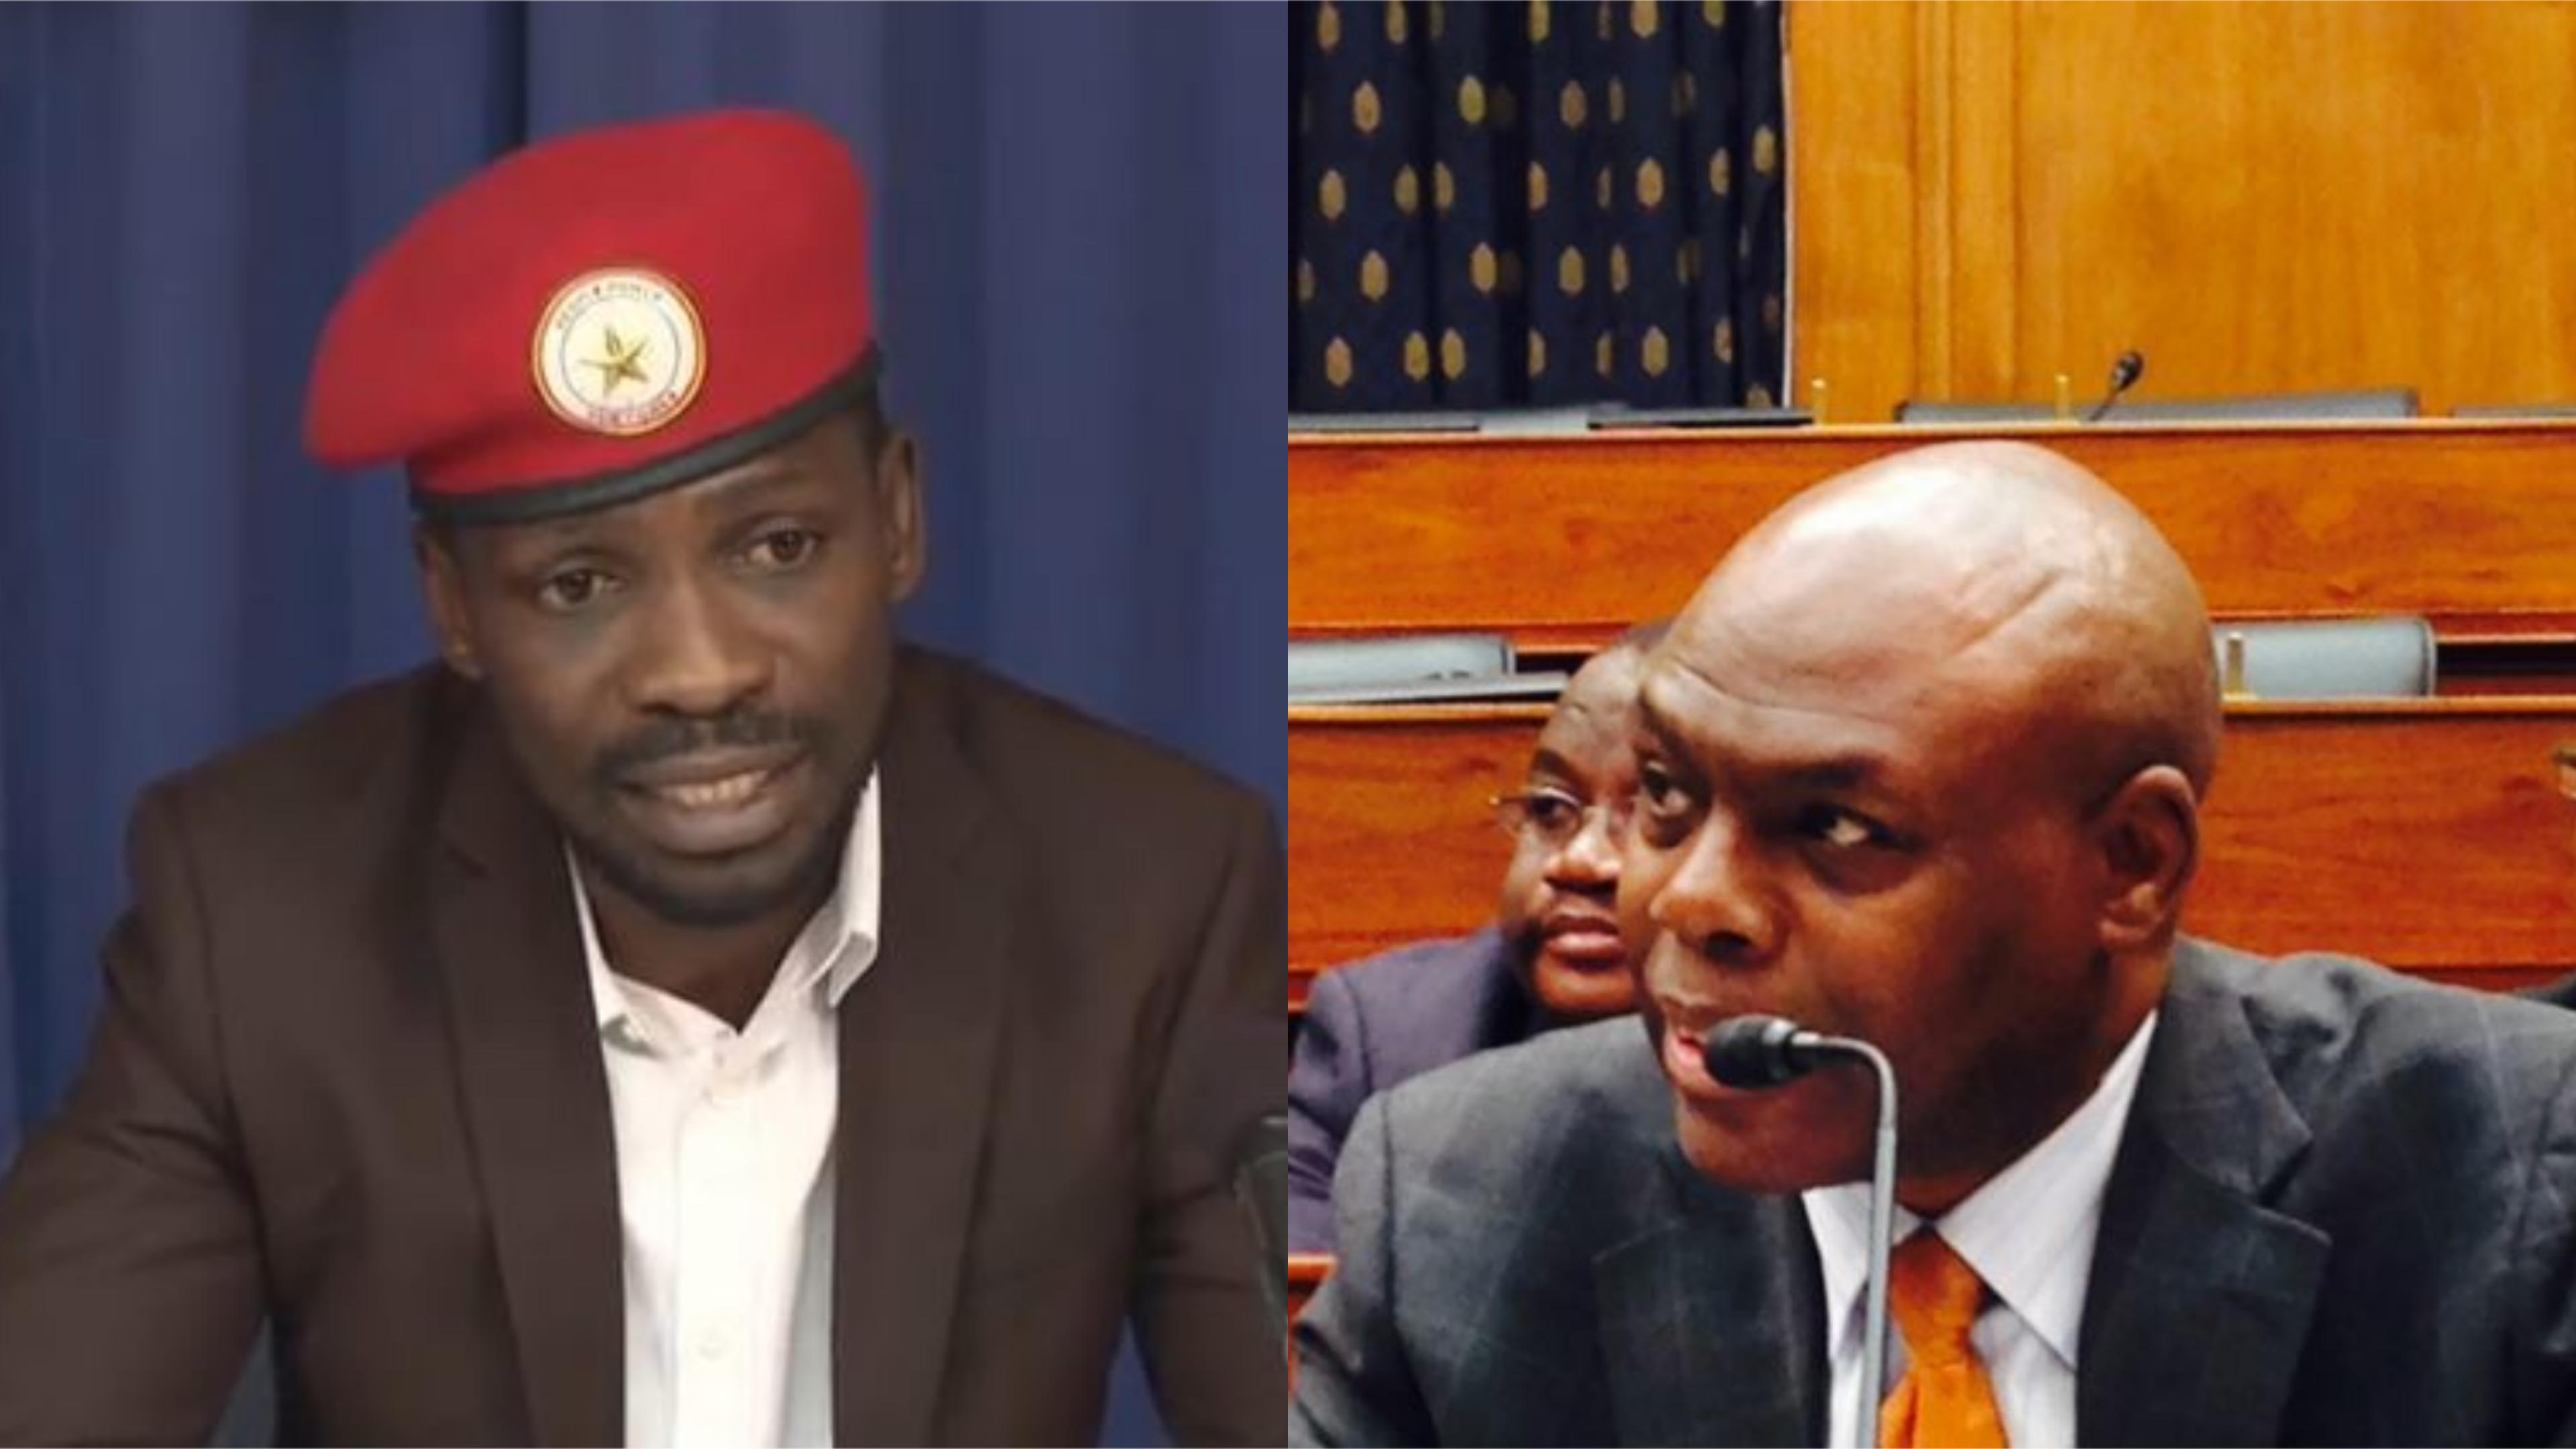 Kyadondo Easr MP Robert Kyagulanyi aka Bobi Wine is set to feature on Voice of America's Straight Talk Africa hosted by Ugandan-American veteran journalist, Shaka Ssali (FILE PHOTO MONTAGE)